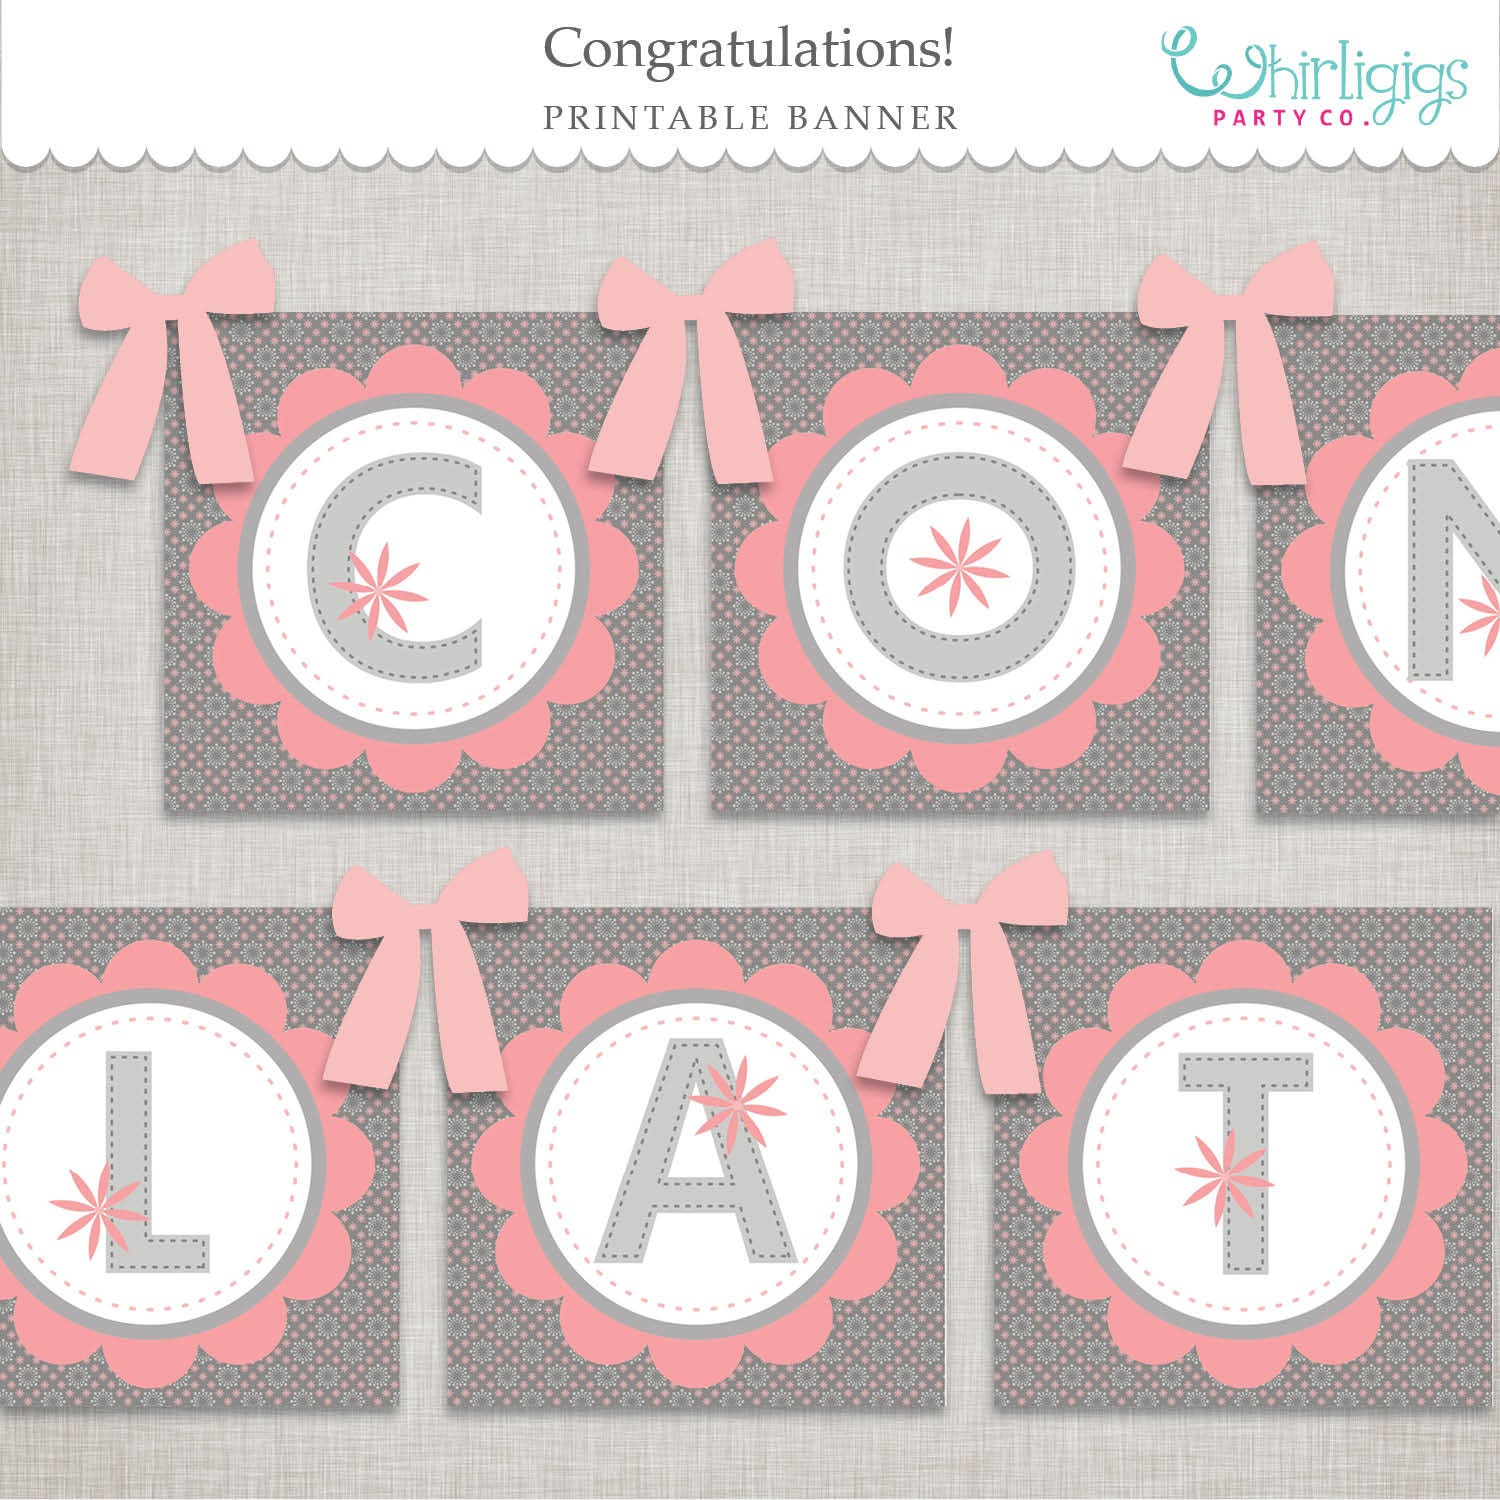 picture about Congratulations Banner Free Printable called Purple Floral Congratulations Banner Printable Record Immediate Obtain